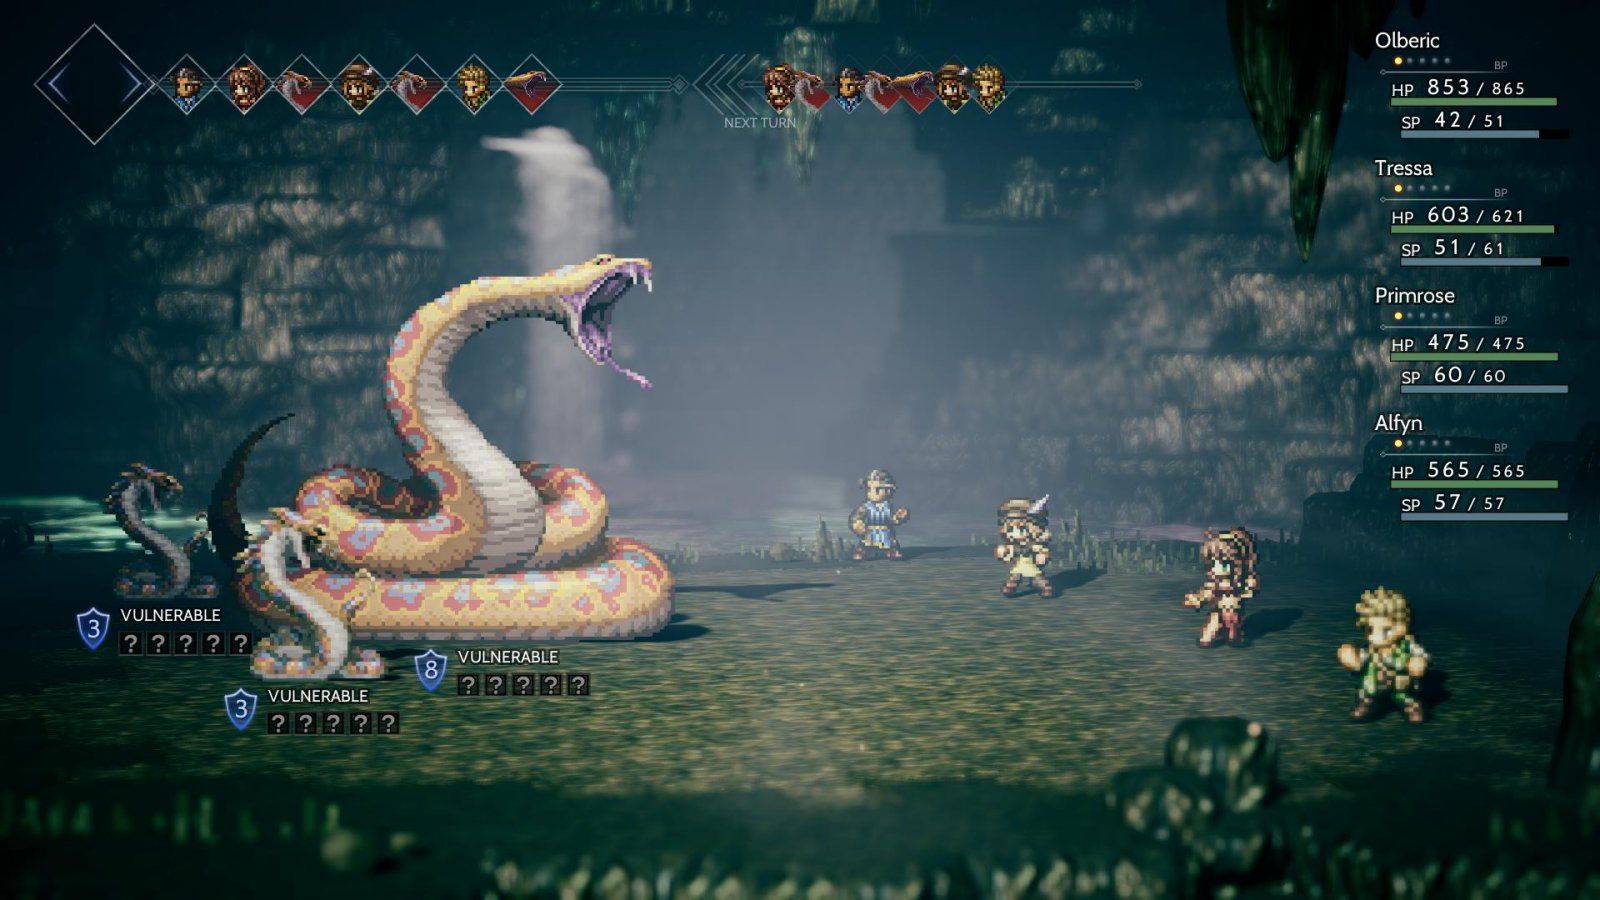 Octopath Traveler Giant Snake